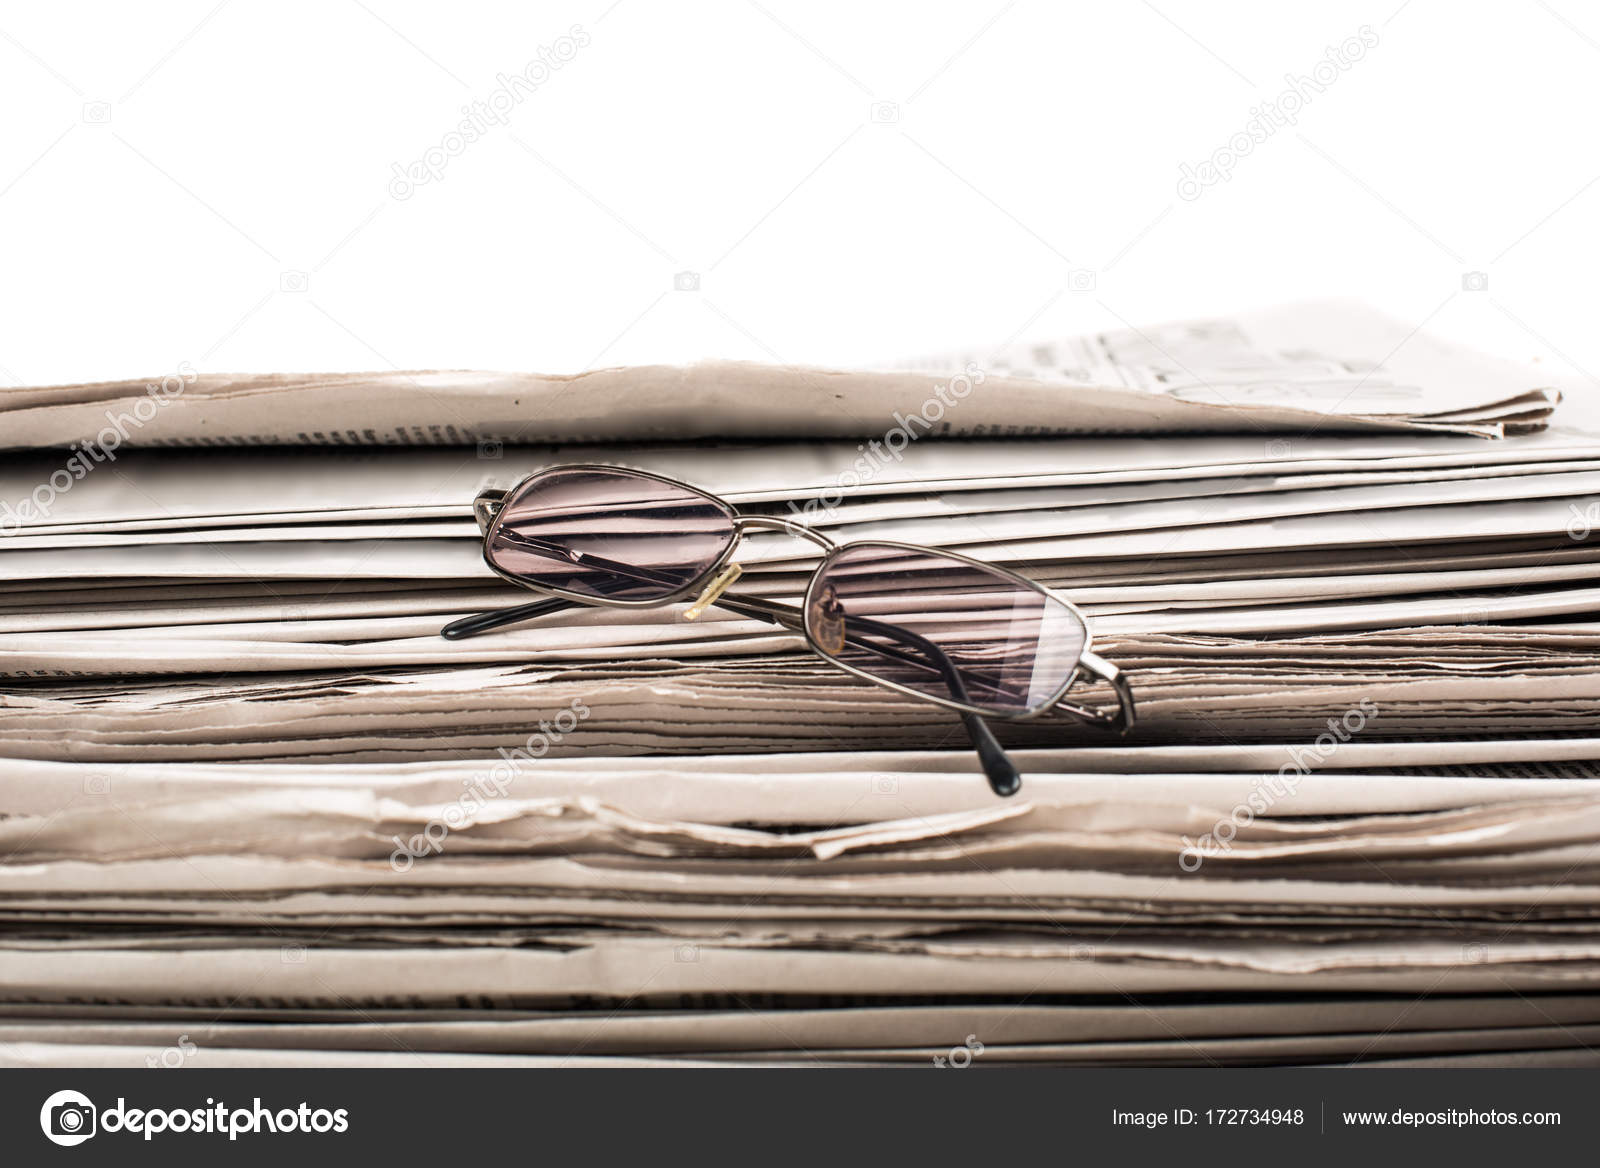 a stack of newspapers — stock photo © ksena32 #172734948